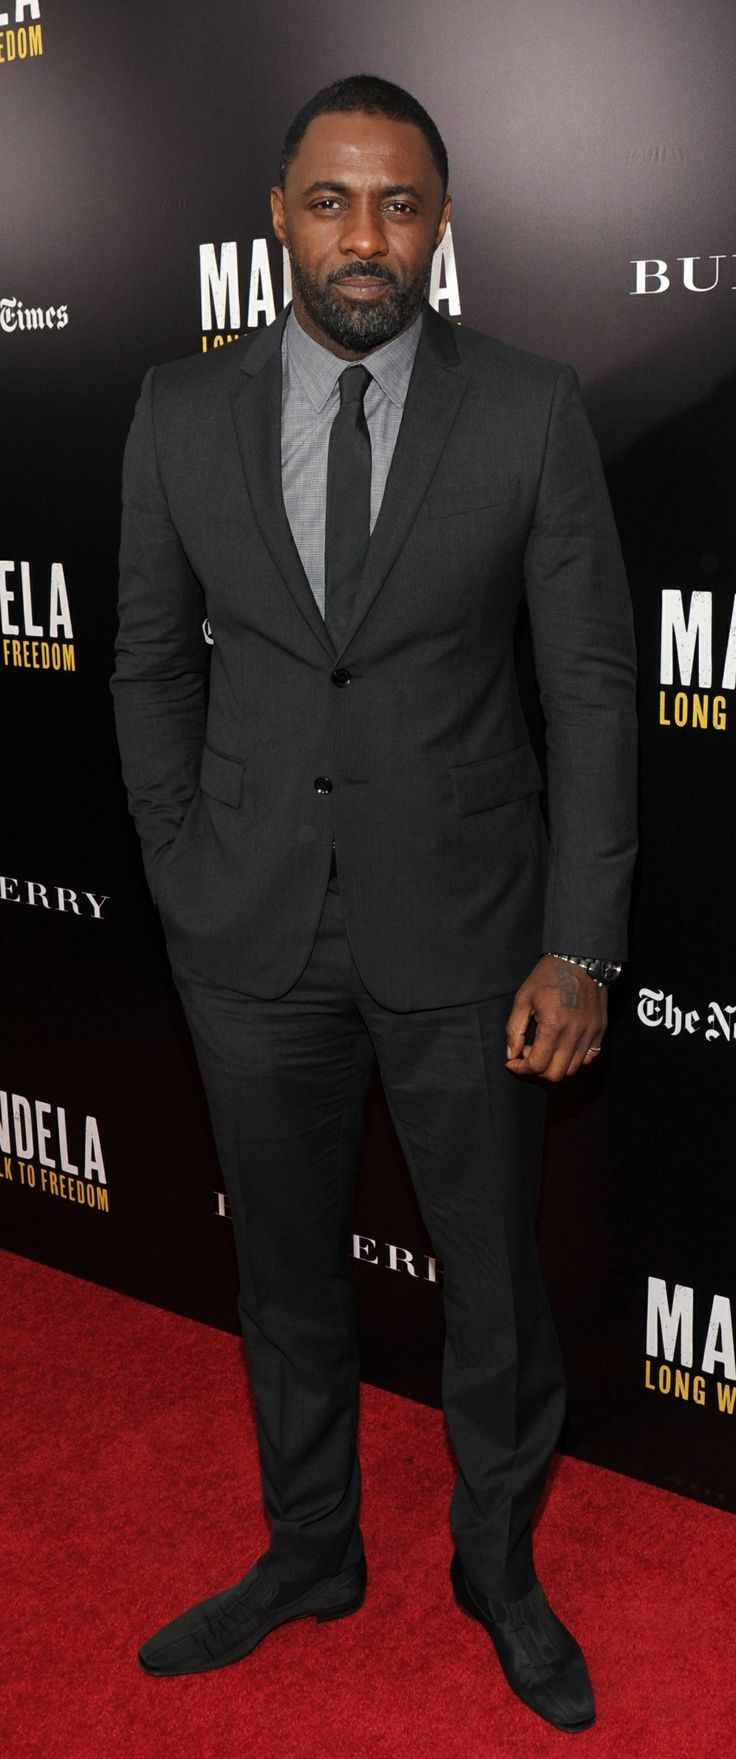 British actor idris elba wearing burberry tailoring at the screening of mandela long walk to